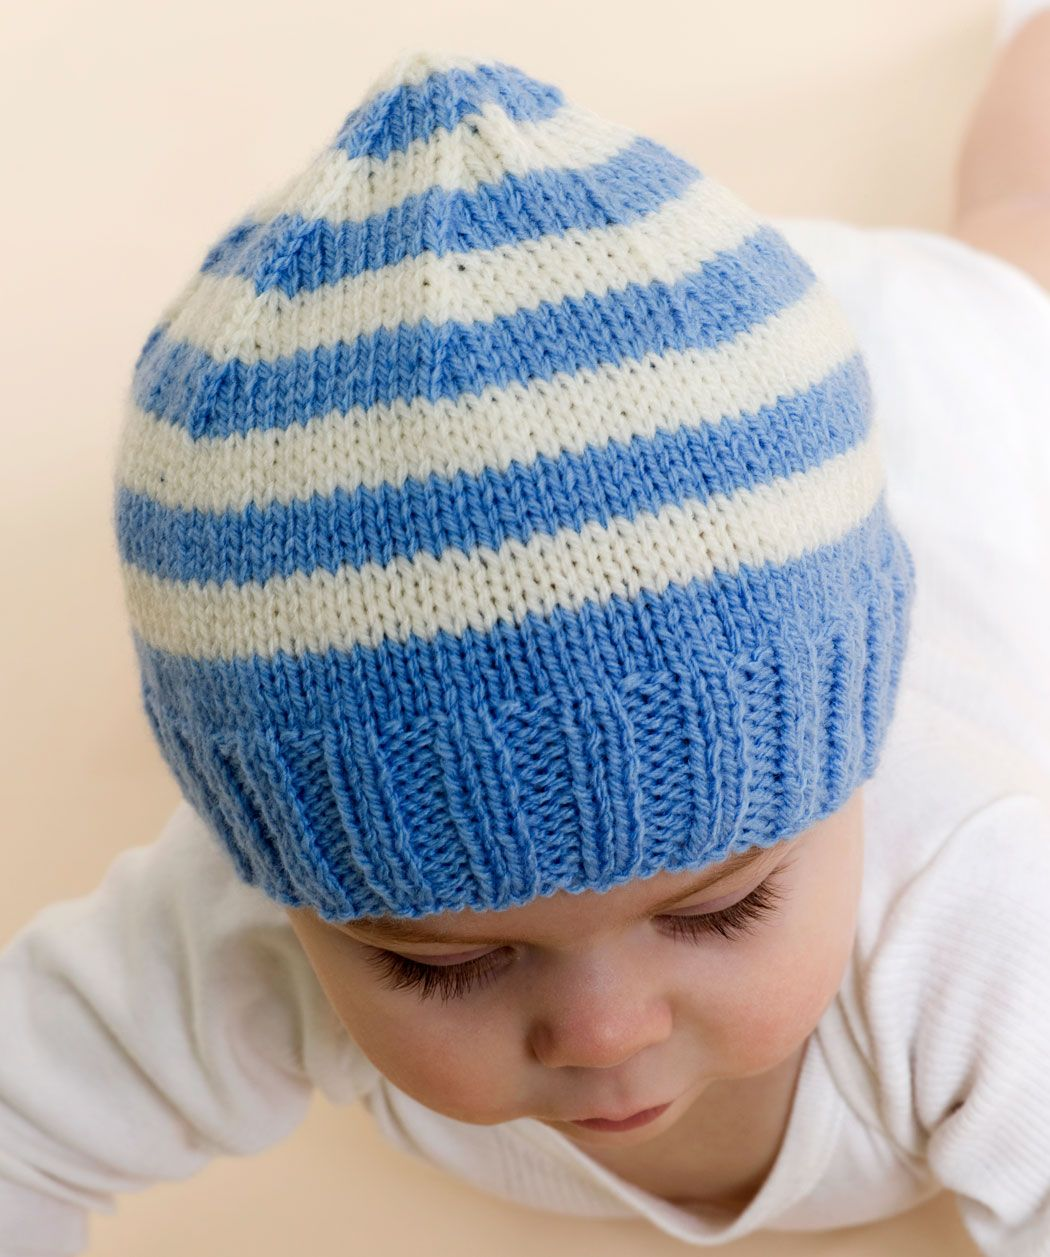 Free Knitting Patterns For Baby Hats Cool Design Ideas